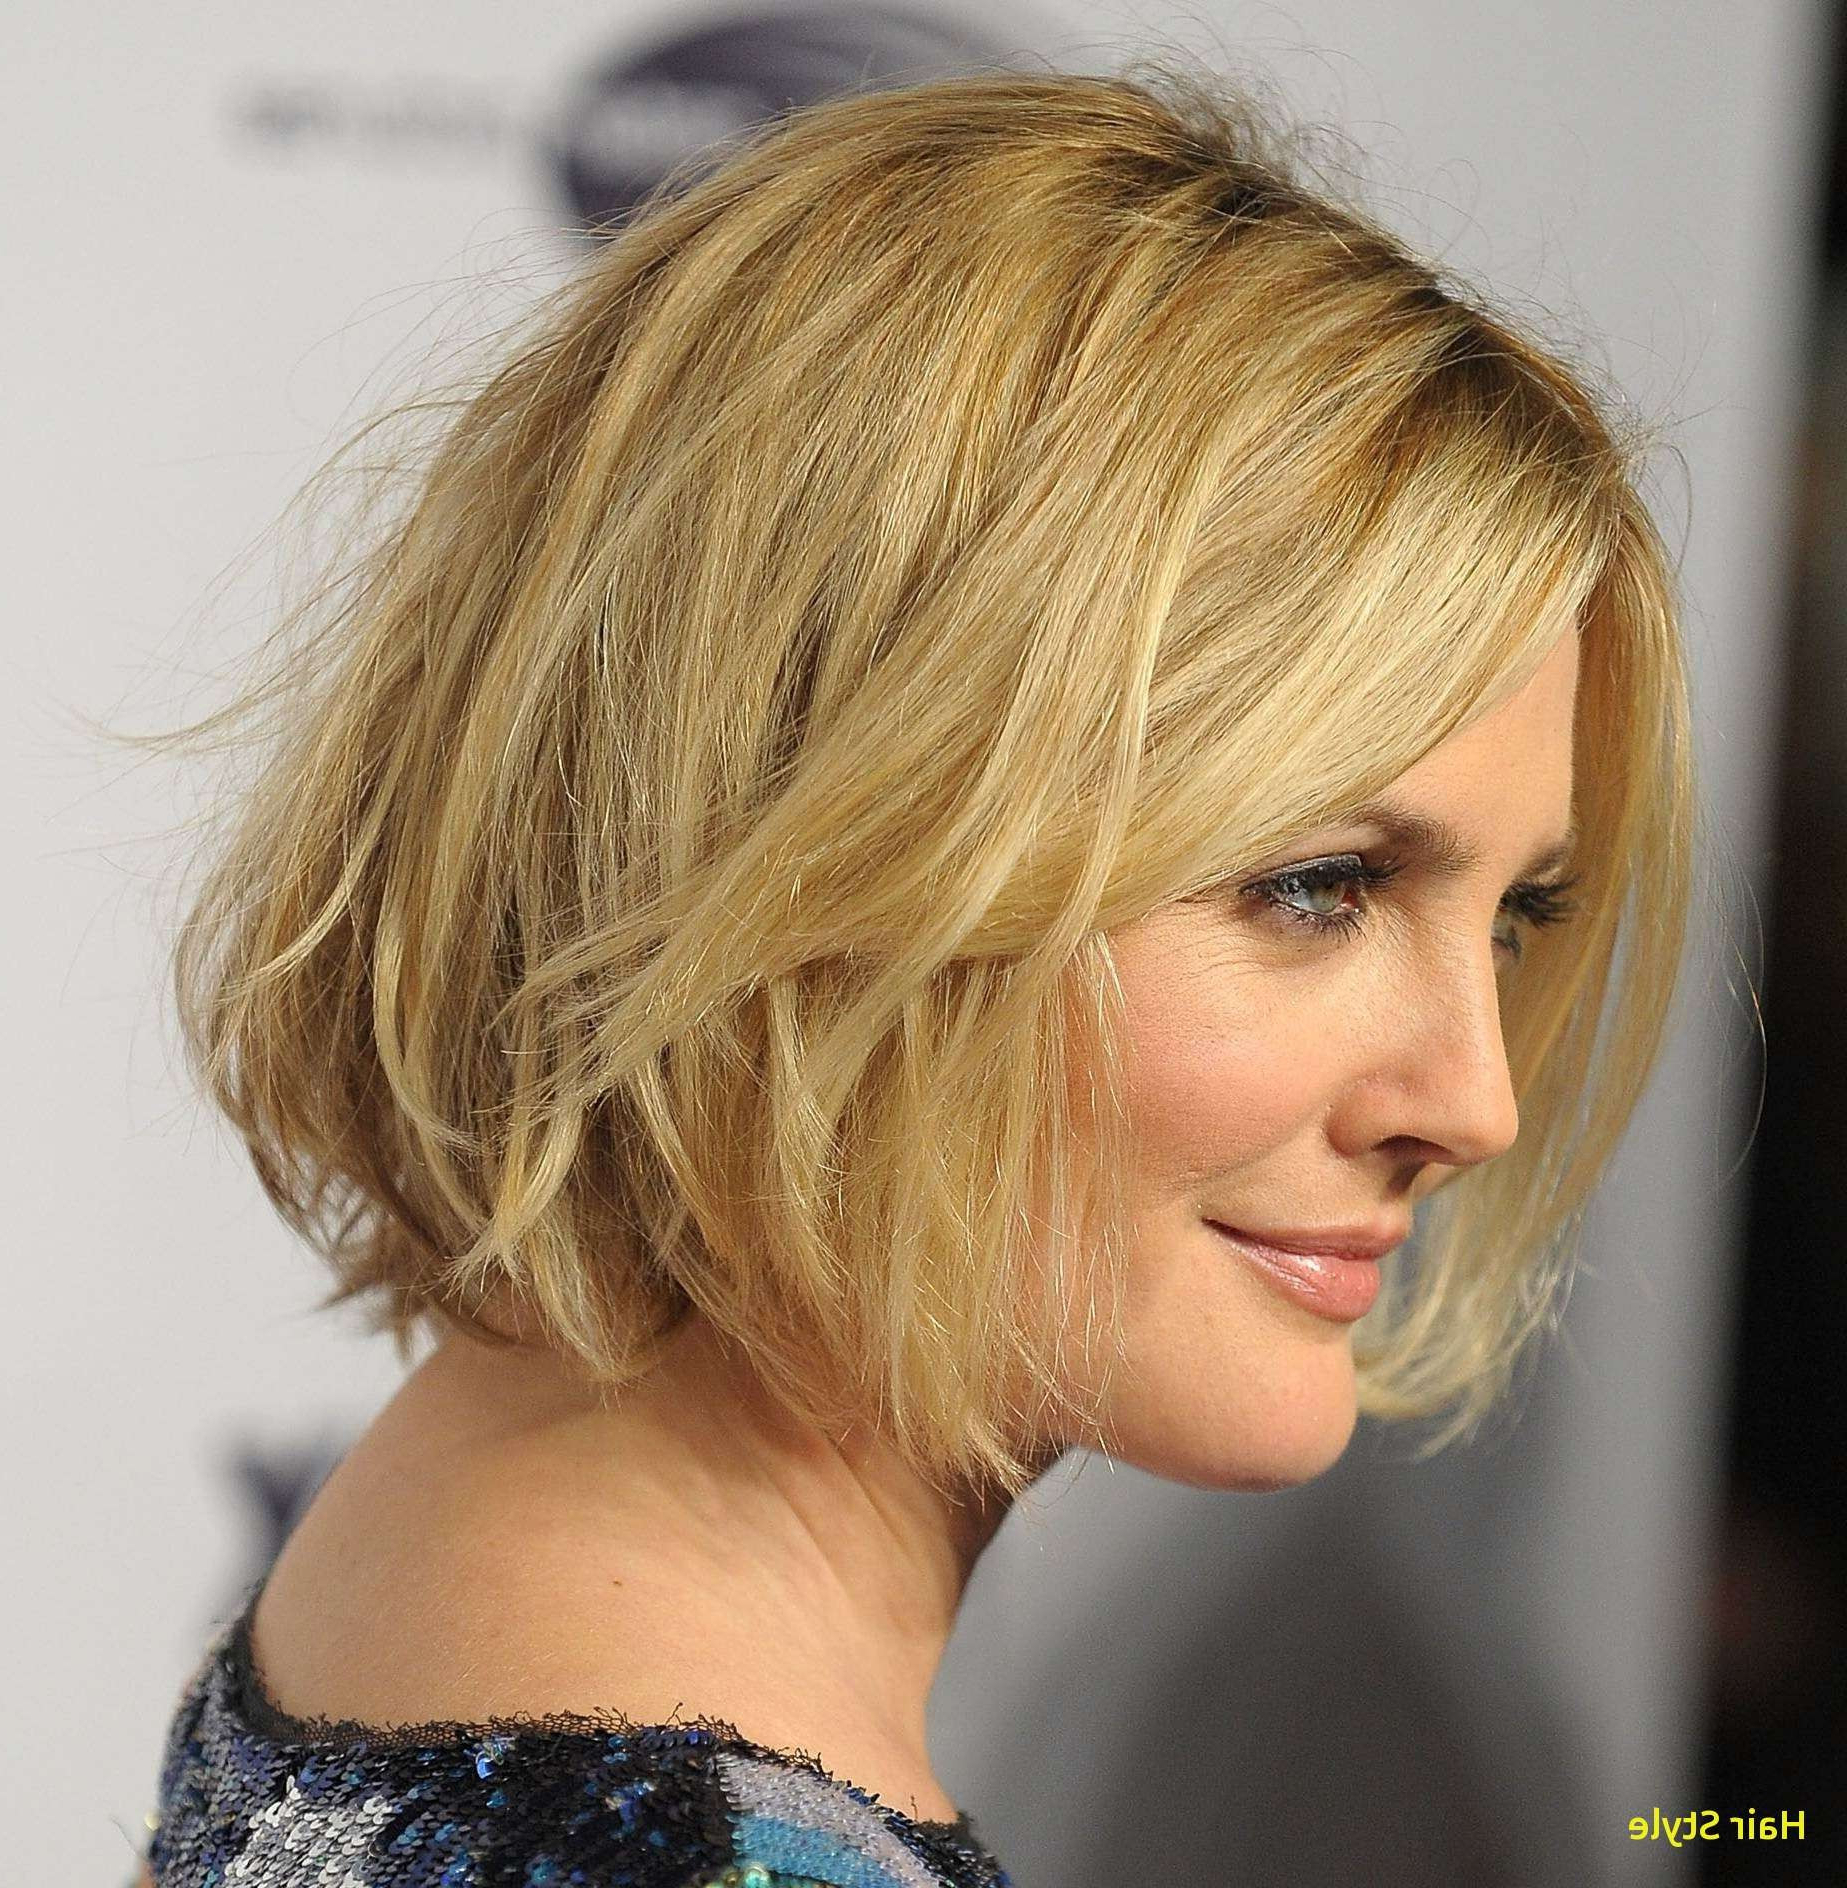 Short To Mid Length Hairstyles Inspirational Unique Hairstyles For Regarding Short To Mid Length Hairstyles (View 24 of 25)